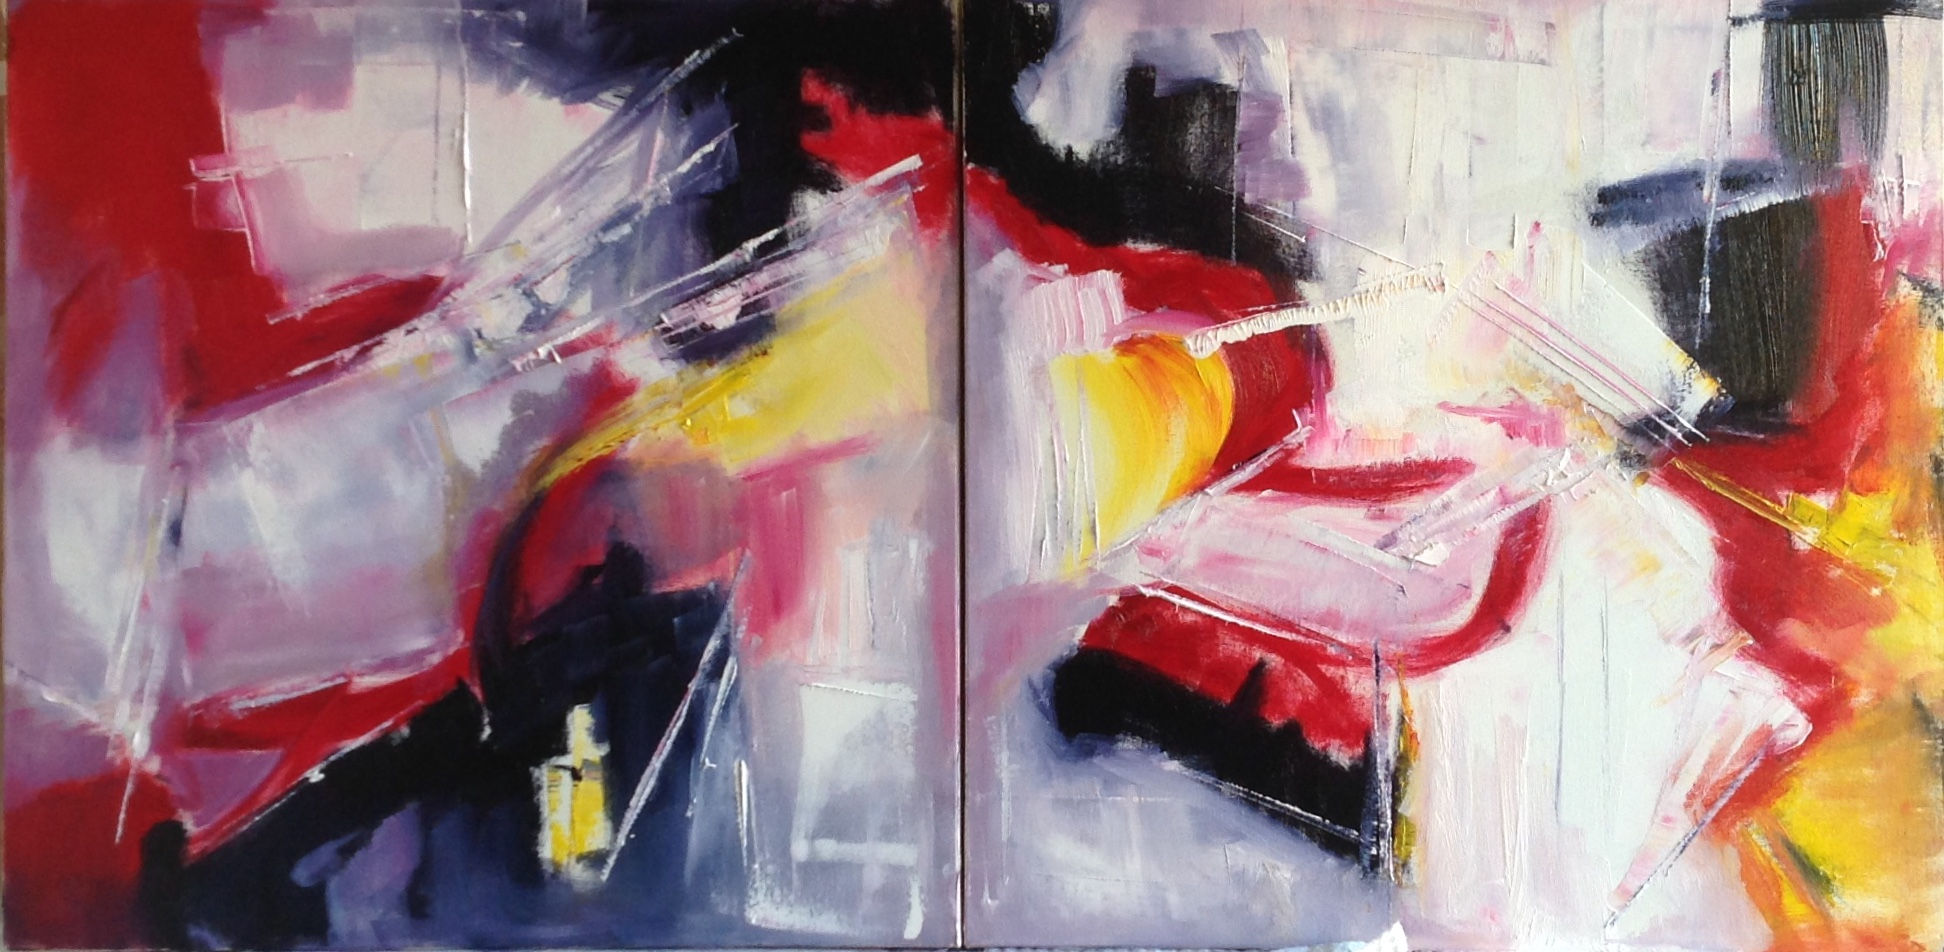 Untitled, diphtyc, oil on canvas, 20 x 40 inches, 50 x 100 cm